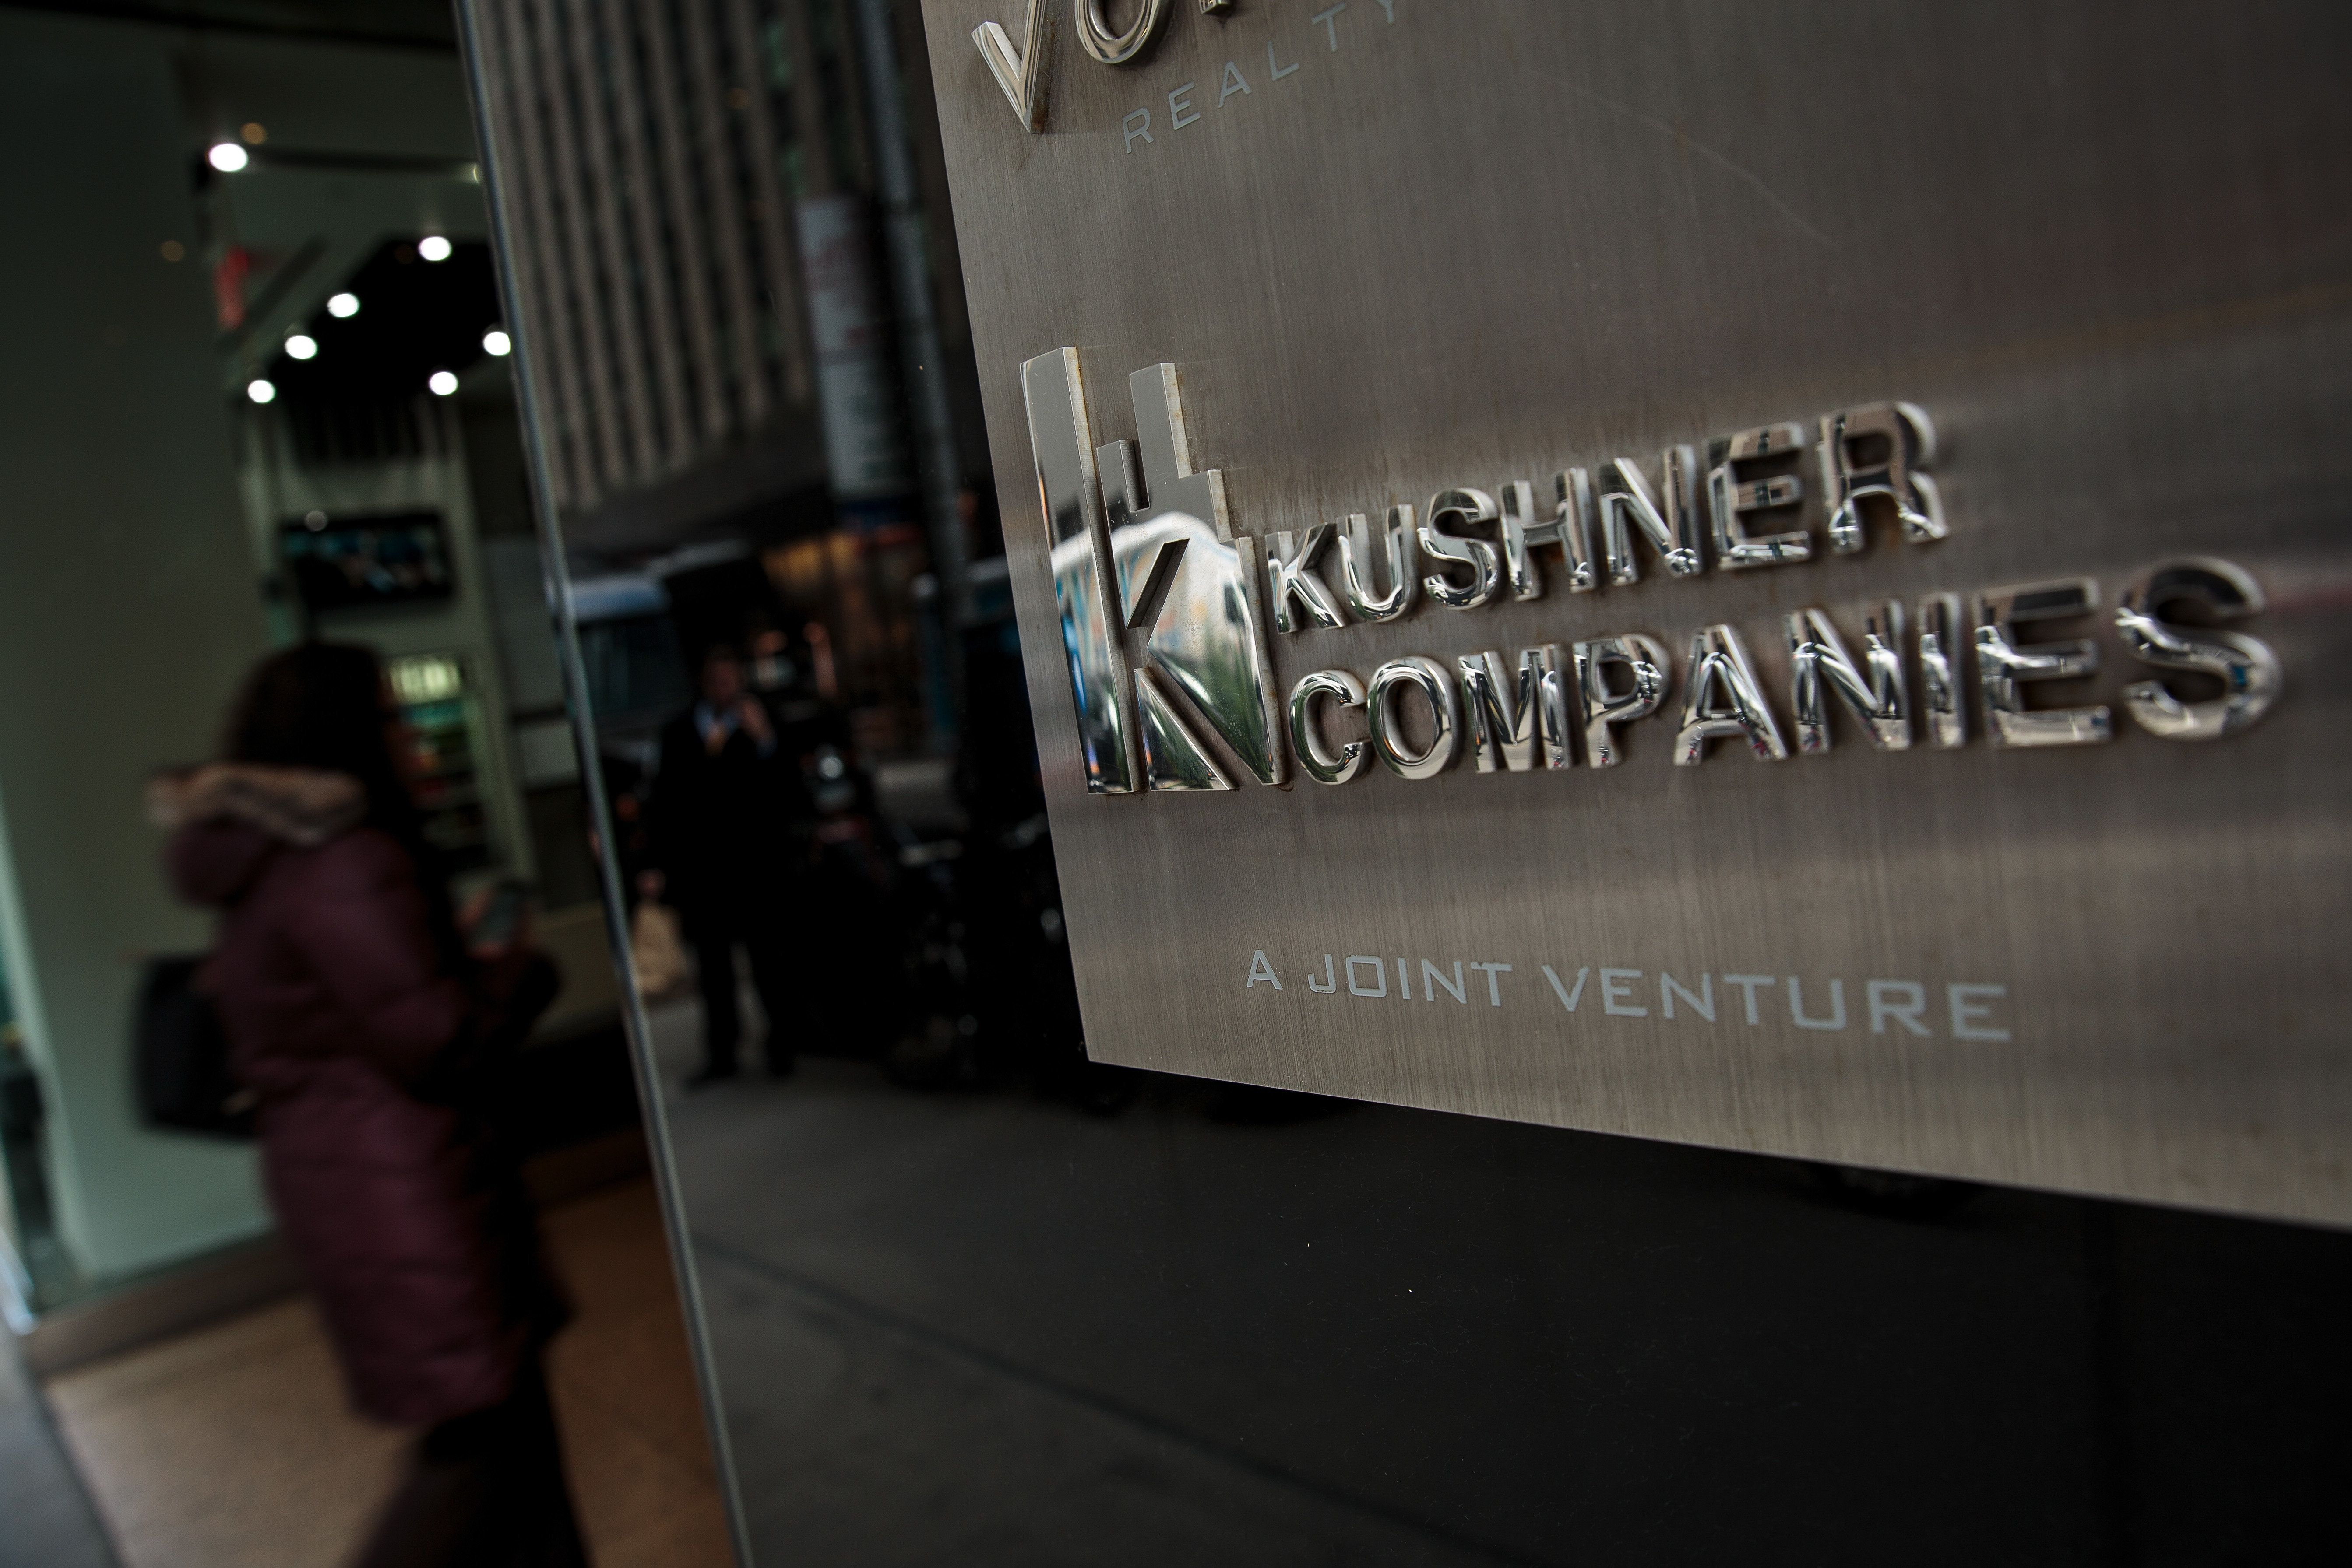 NEW YORK, NY - MARCH 6: A Kushner Companies logo is visible near an entrance to the Kushner Companies' flagship property 666 Fifth Avenue in Midtown Manhattan, March 6, 2018 in New York City. Kushner Companies, run by the family of White House senior adviser Jared Kushner, has been trying to raise funds for their $1.2 billion dollar mortgage on the building that is due in February 2019. The Kushners bought the property for $1.8 billion in 2006. Many real estate analysts say that they Kushners vastly overpaid for the property. (Photo by Drew Angerer/Getty Images)